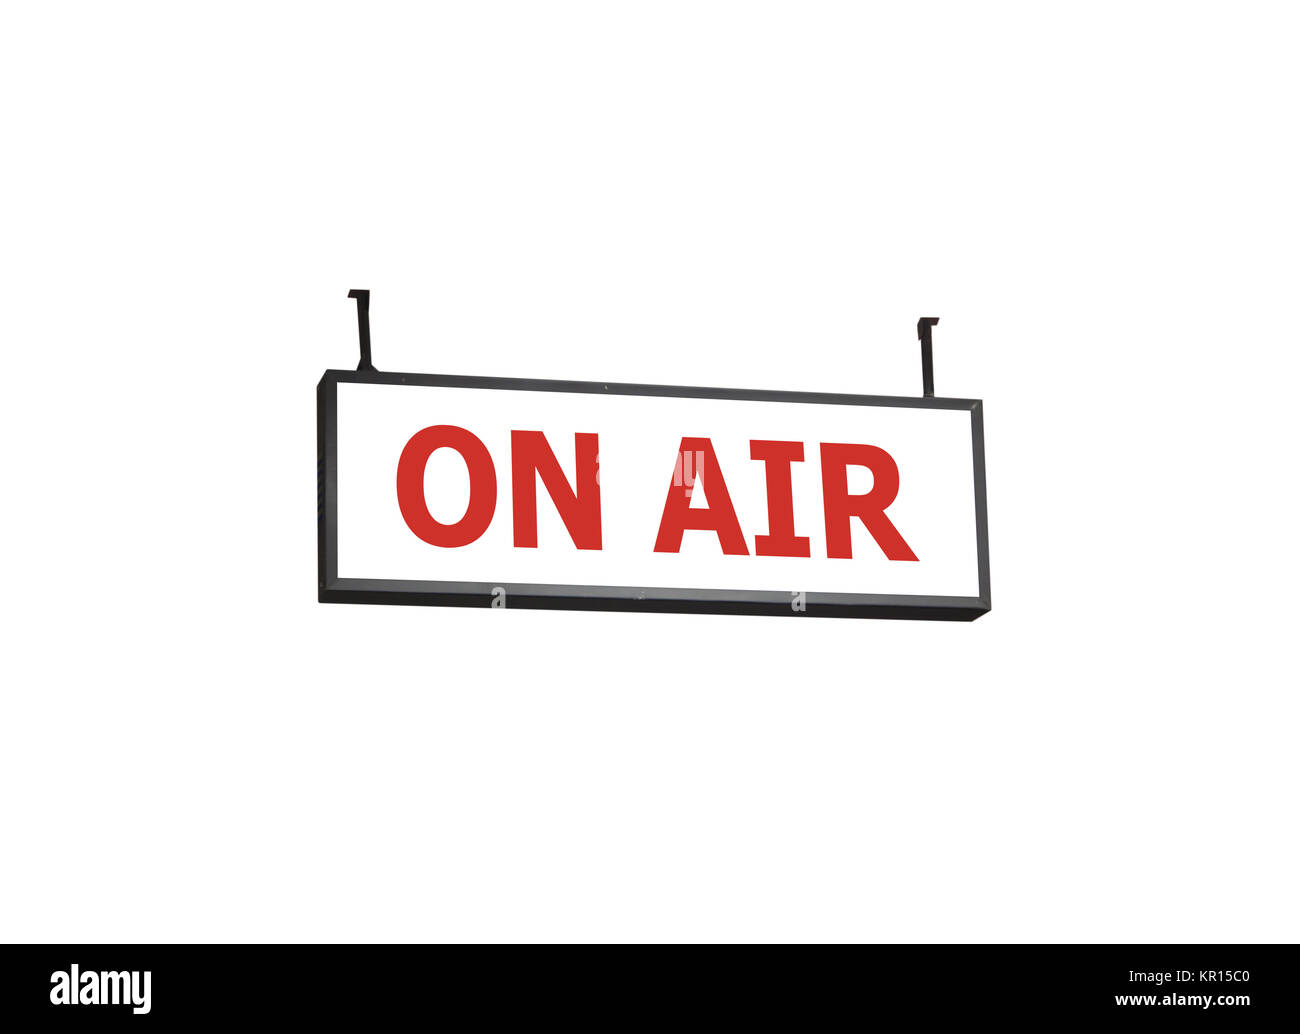 On air signboard on white background - Stock Image